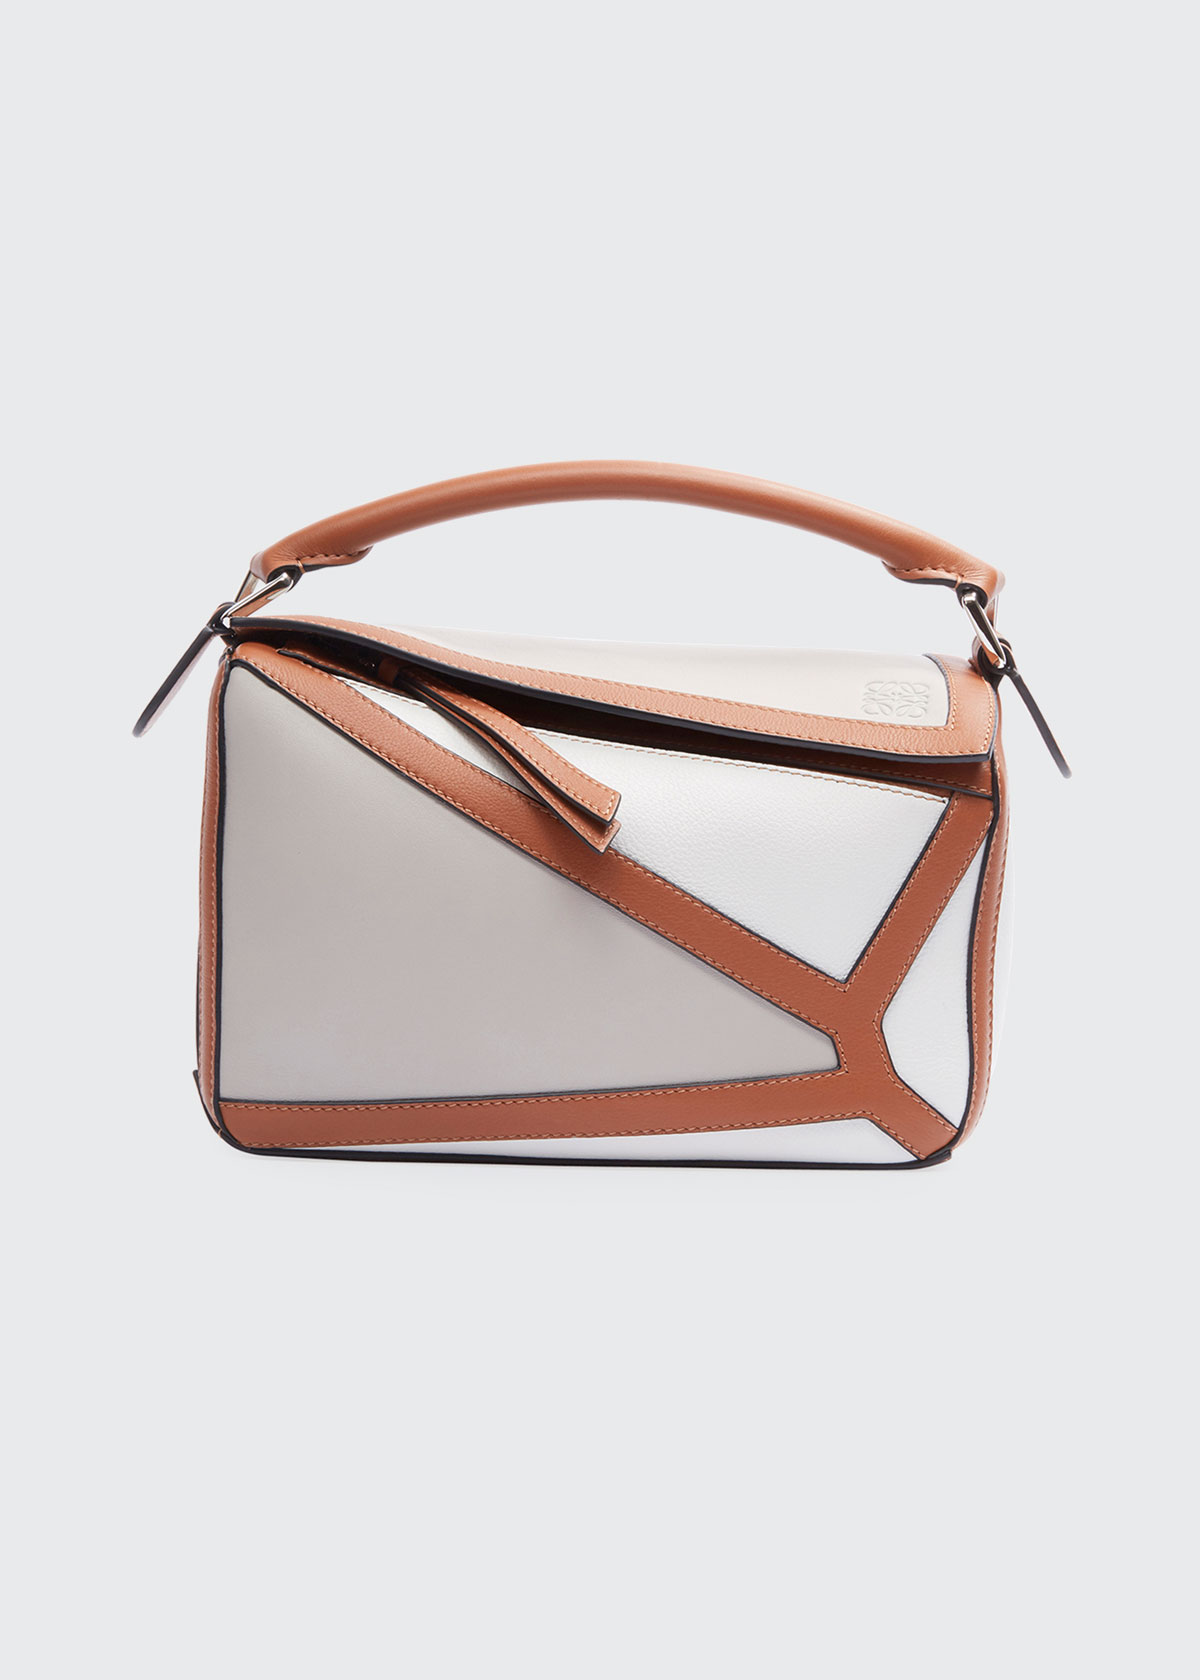 Loewe Bags PUZZLE TWO-TONE LEATHER SATCHEL BAG